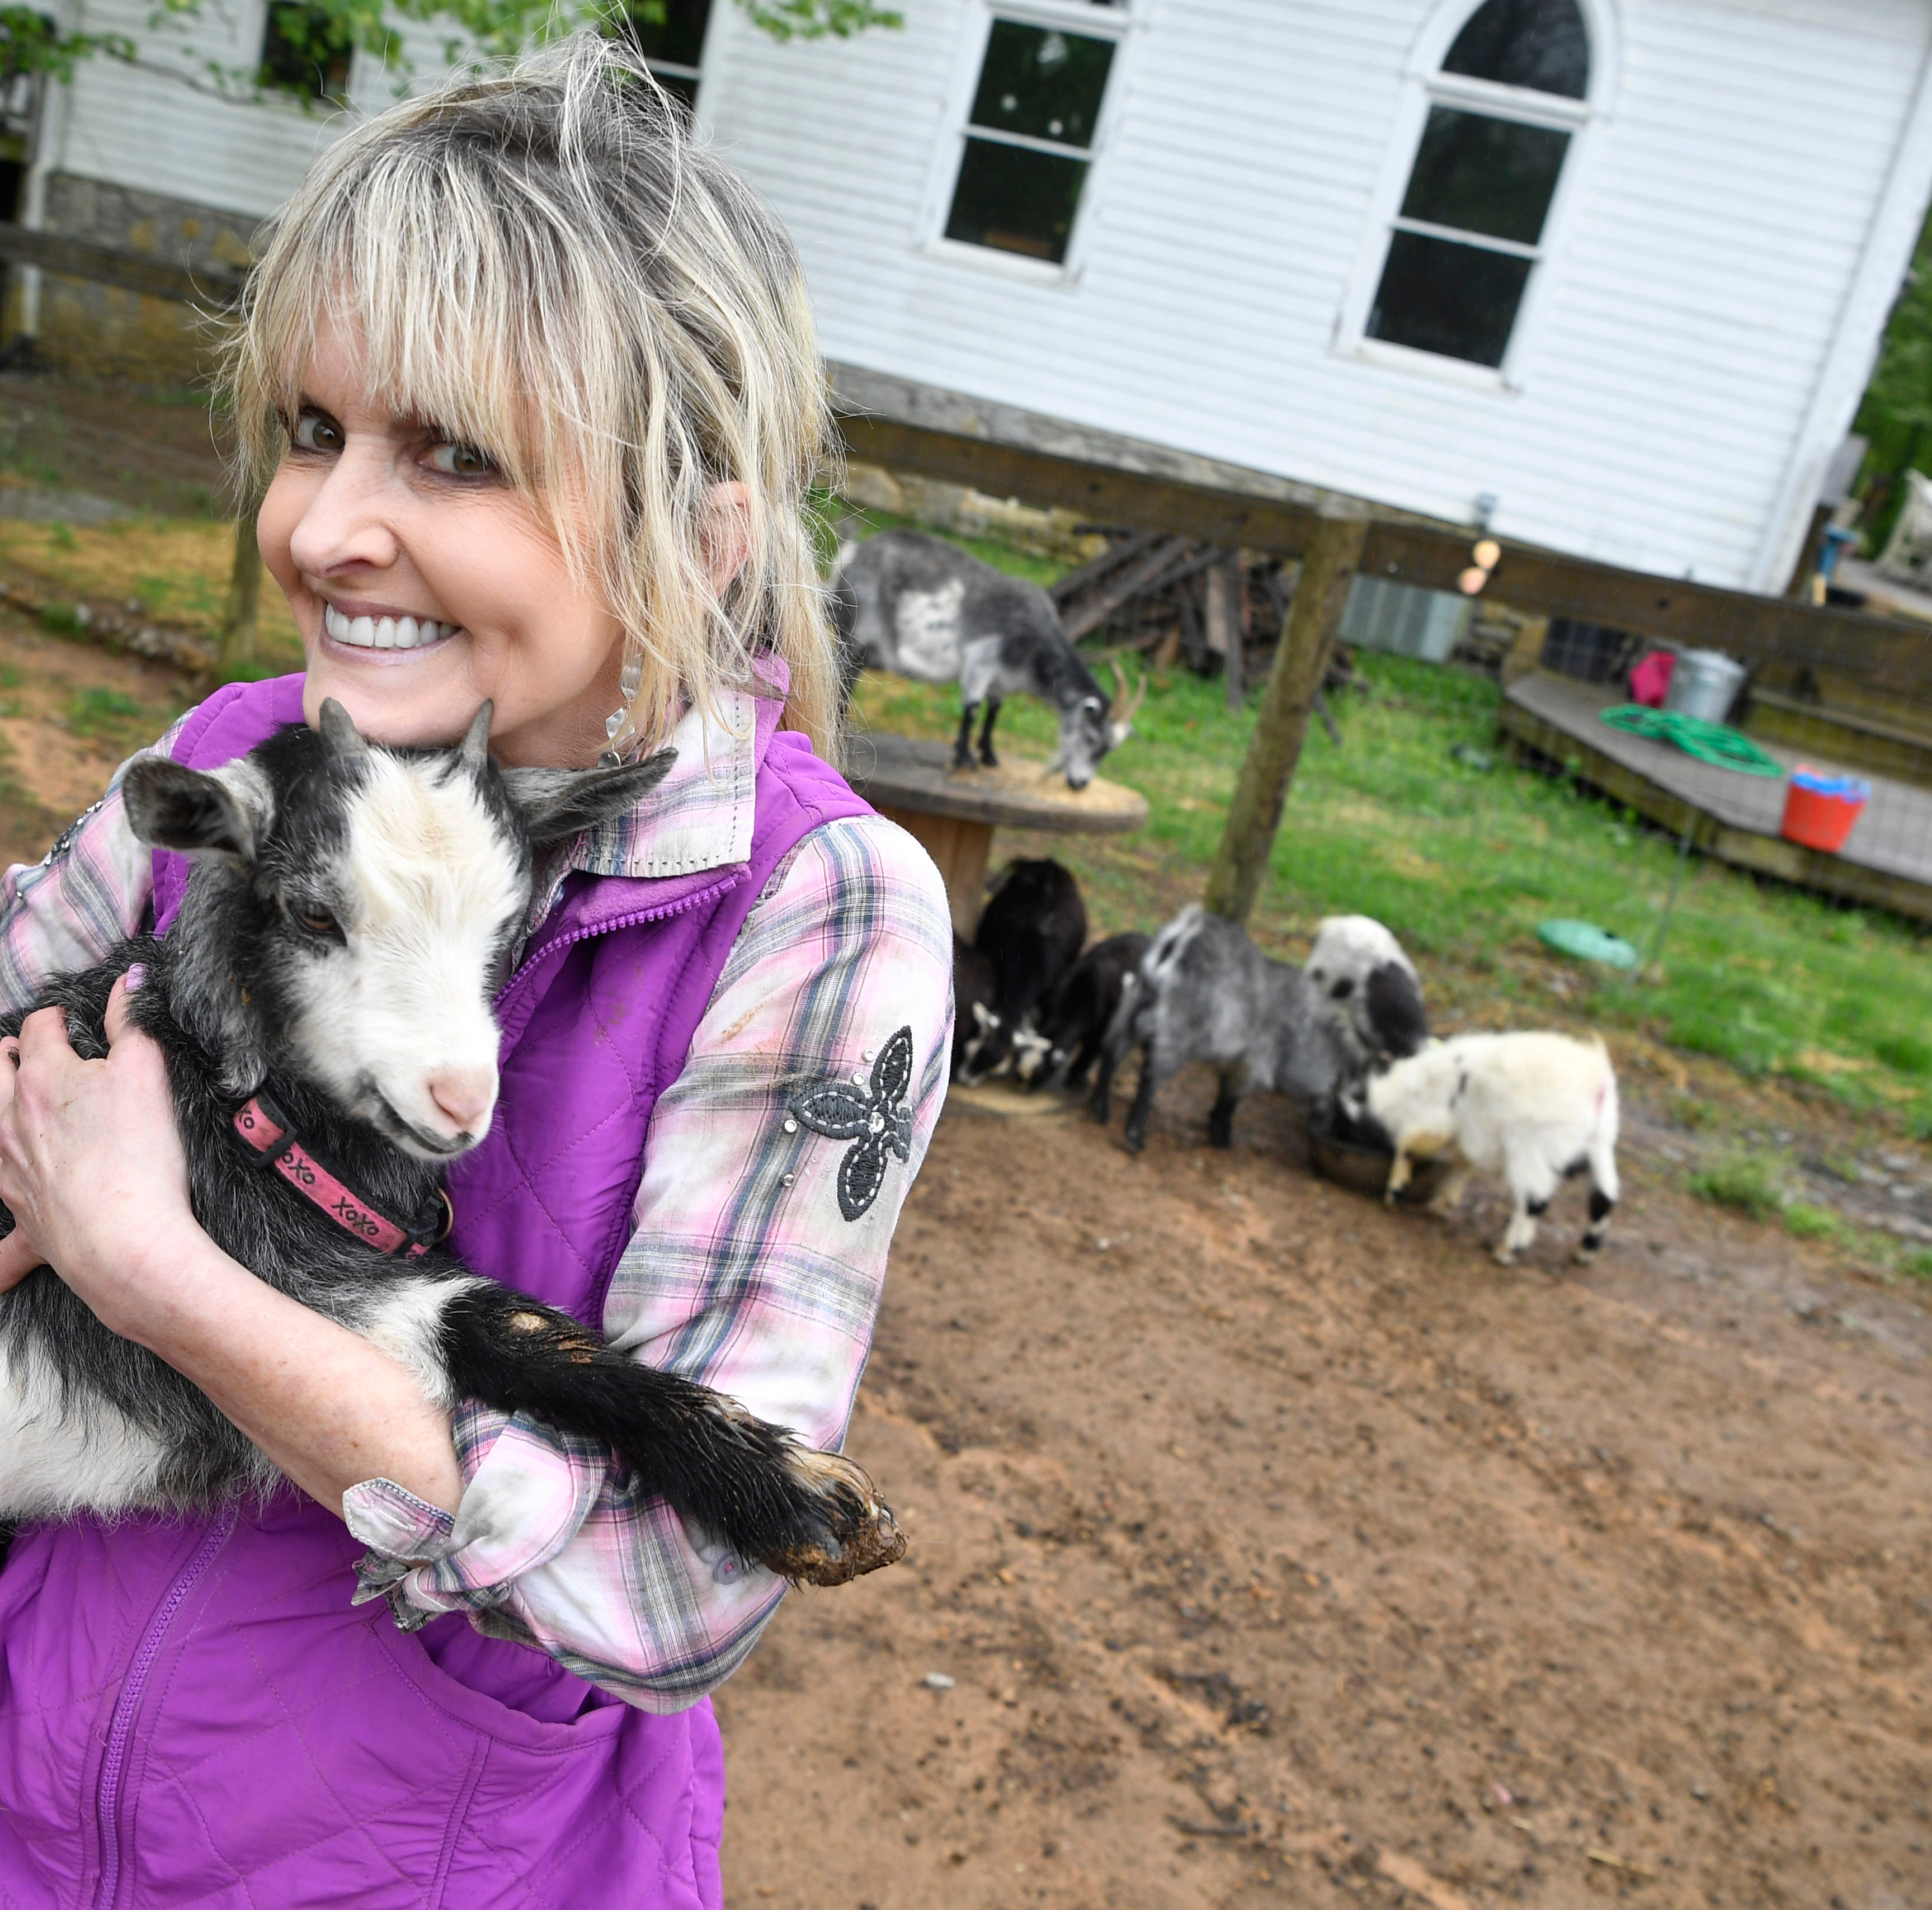 Bingo the Weather Goat launches two careers for Karlen Evins